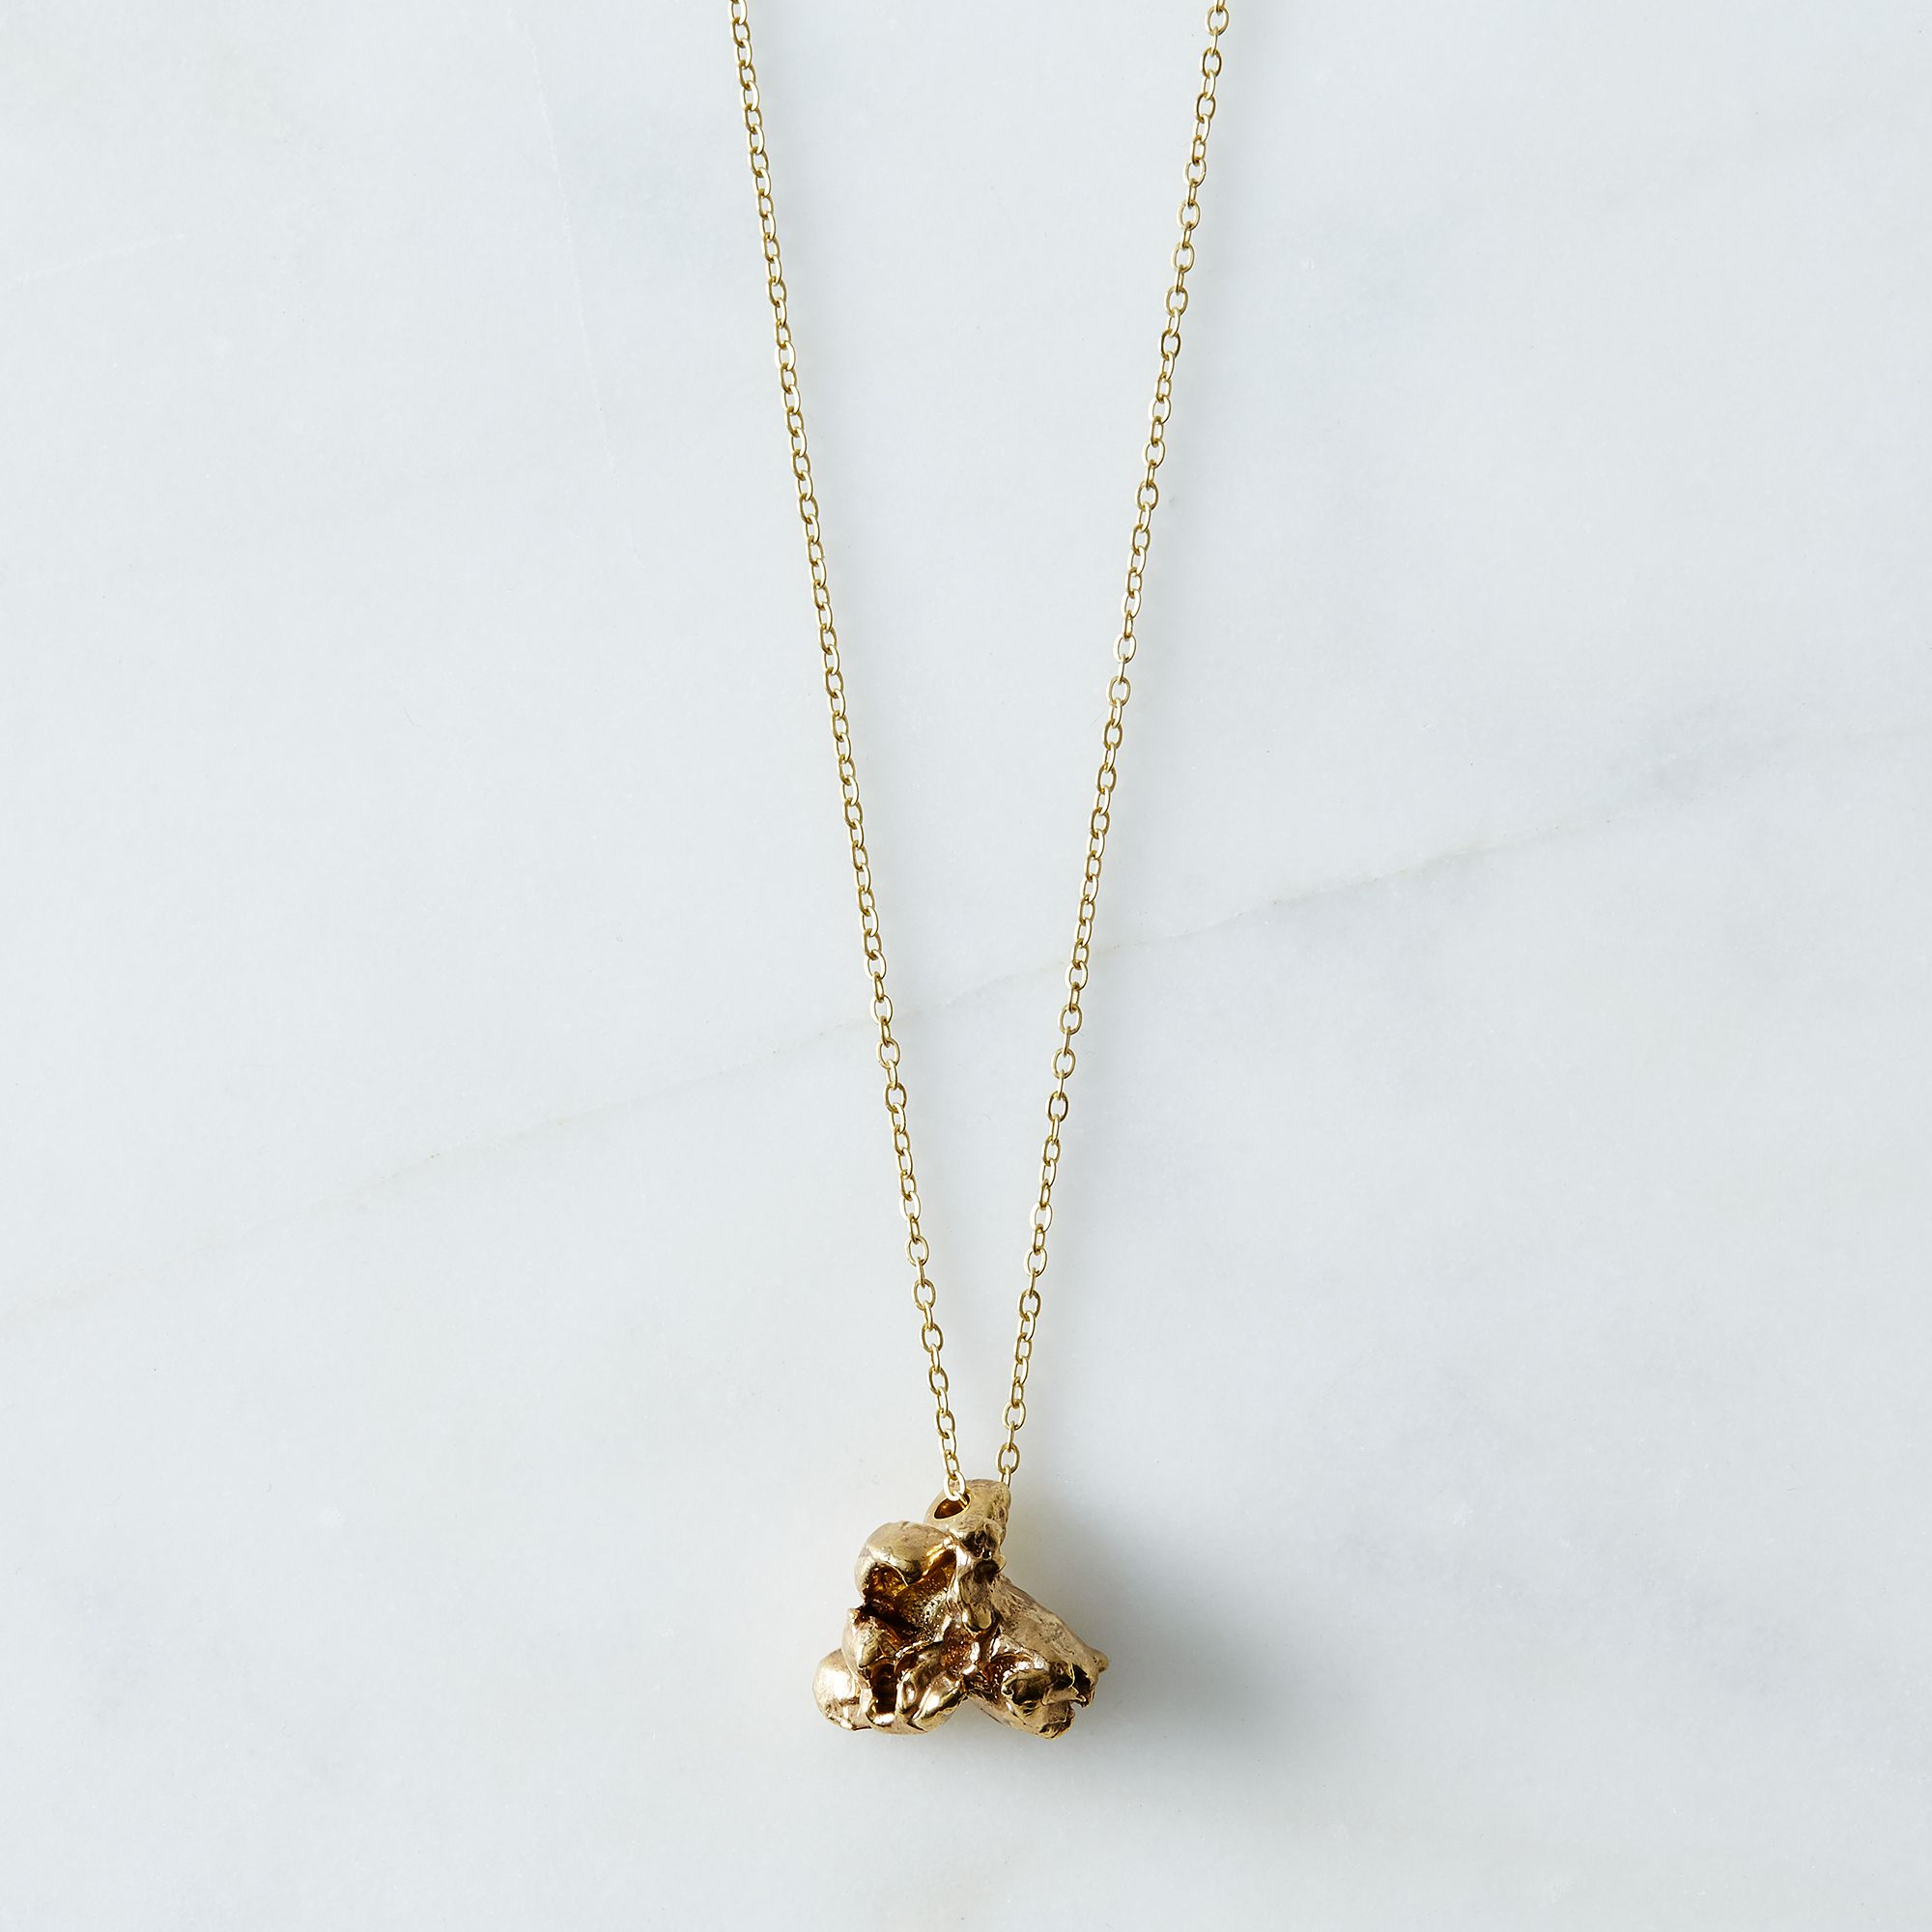 Popcorn Necklace - Brass